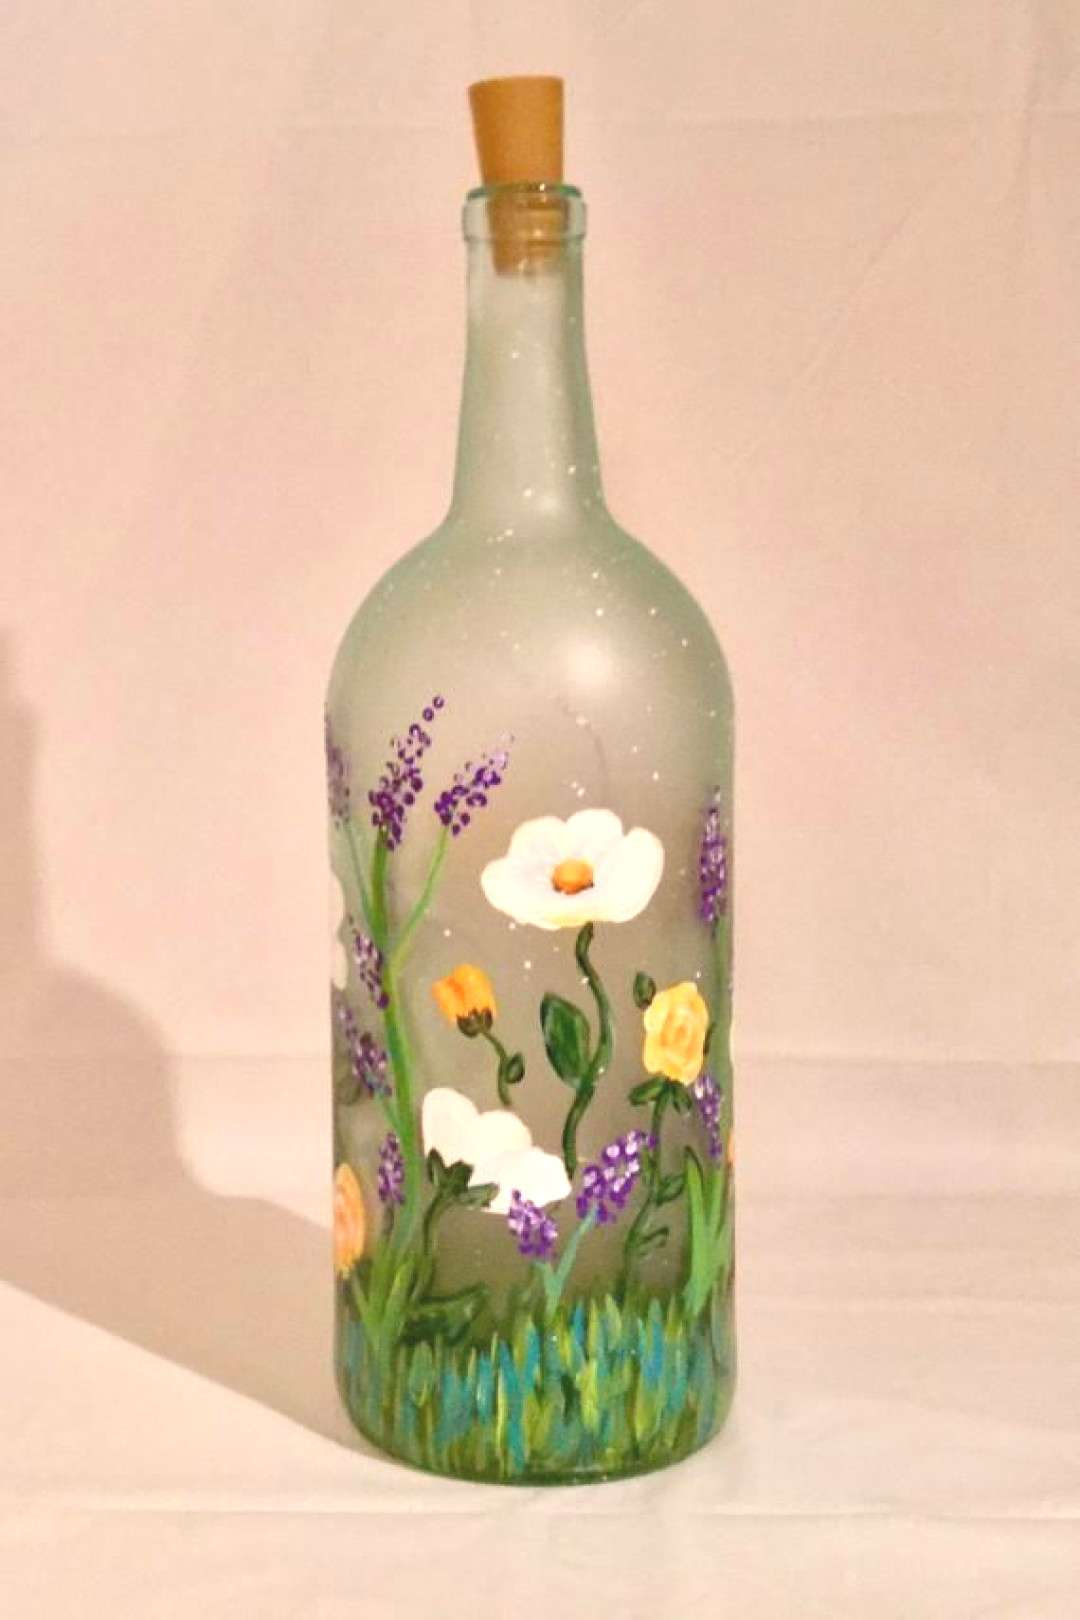 Floral Lighted Bottle Flower Painted Wine Bottle   Etsy bottle crafts summer Your place to buy and